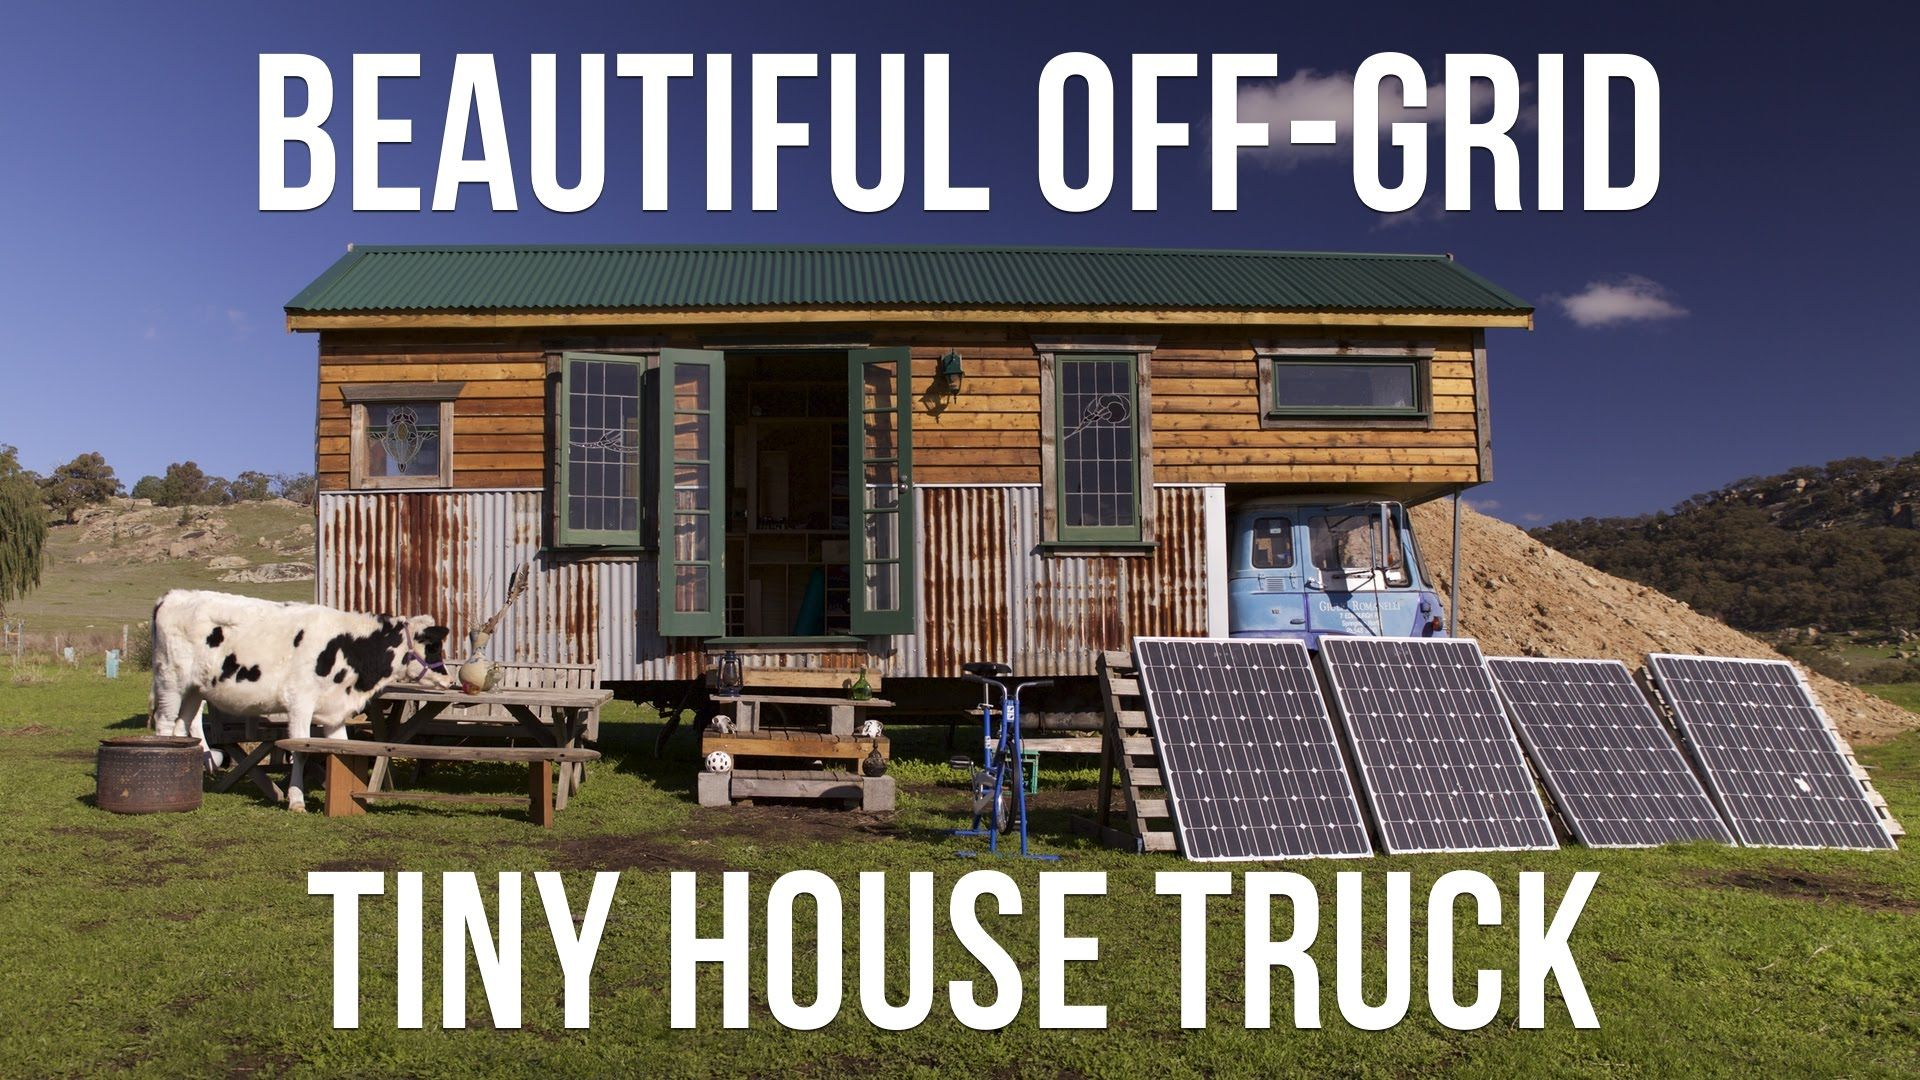 Beautiful Off-Grid Tiny House Truck Made From Reclaimed Materials ...